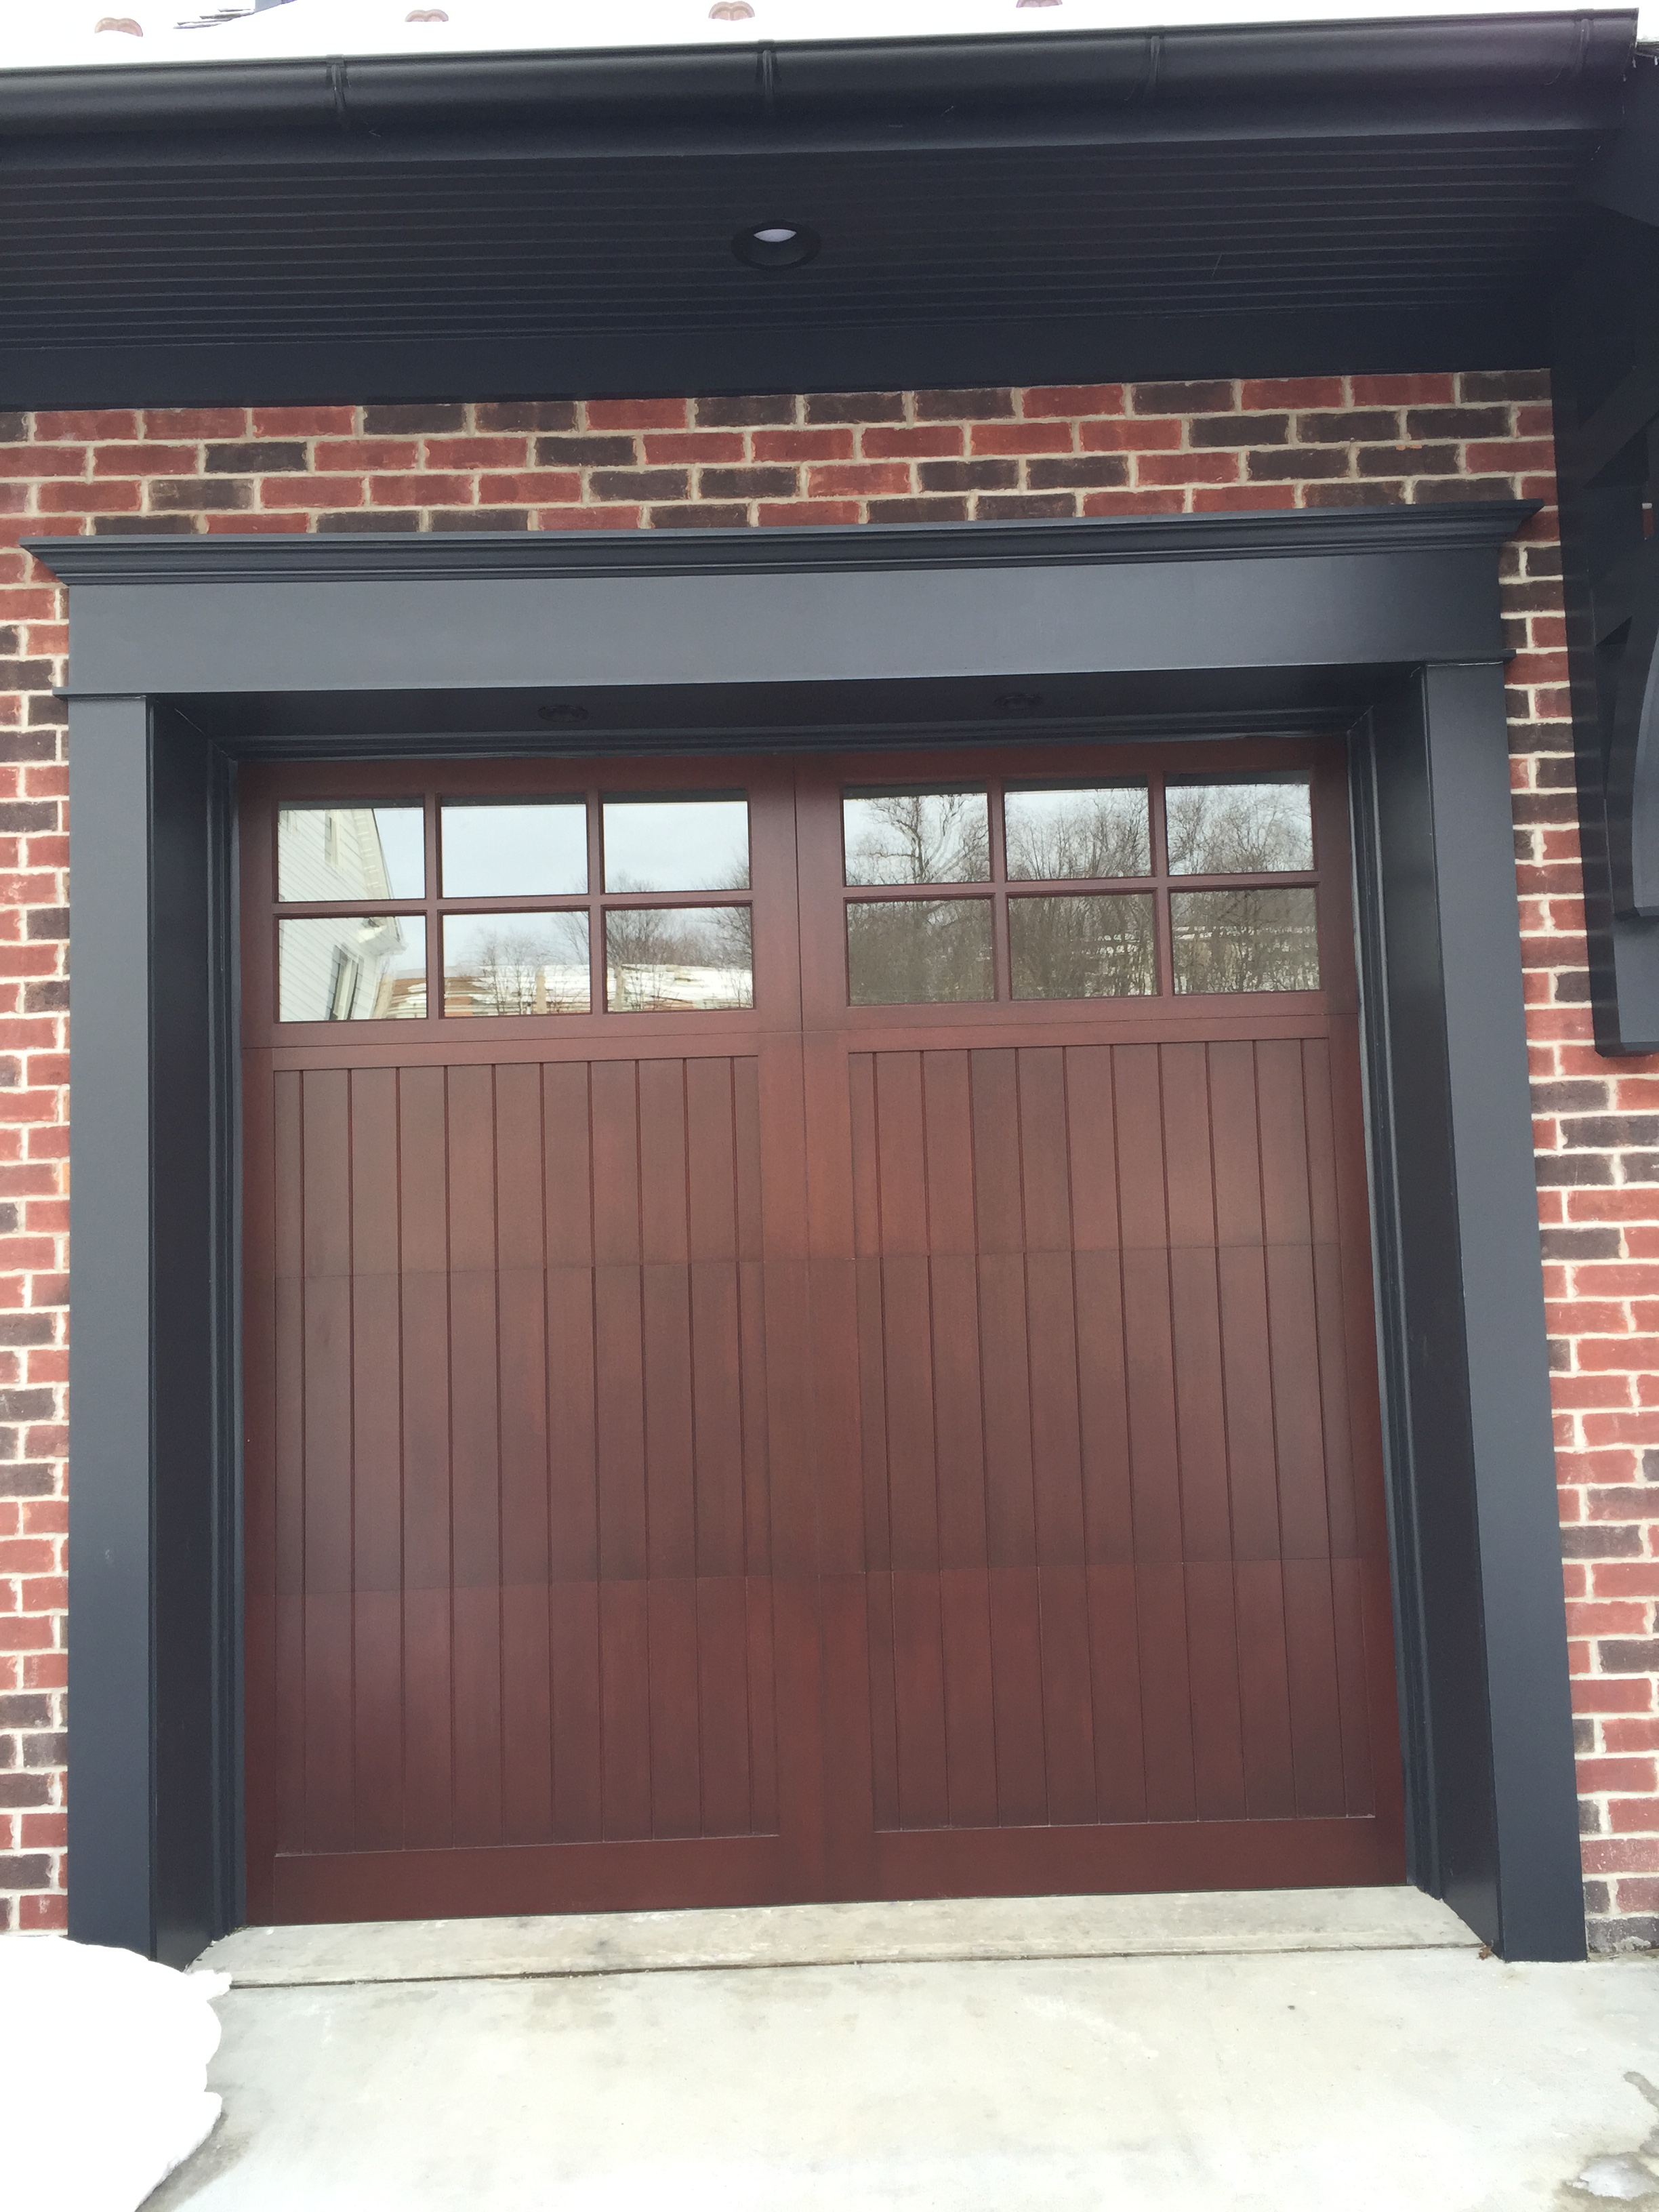 you edmond door your for co m with provide ensures ok on hand doors re is a top commercial wd resource seamless to installation in repair that we garage